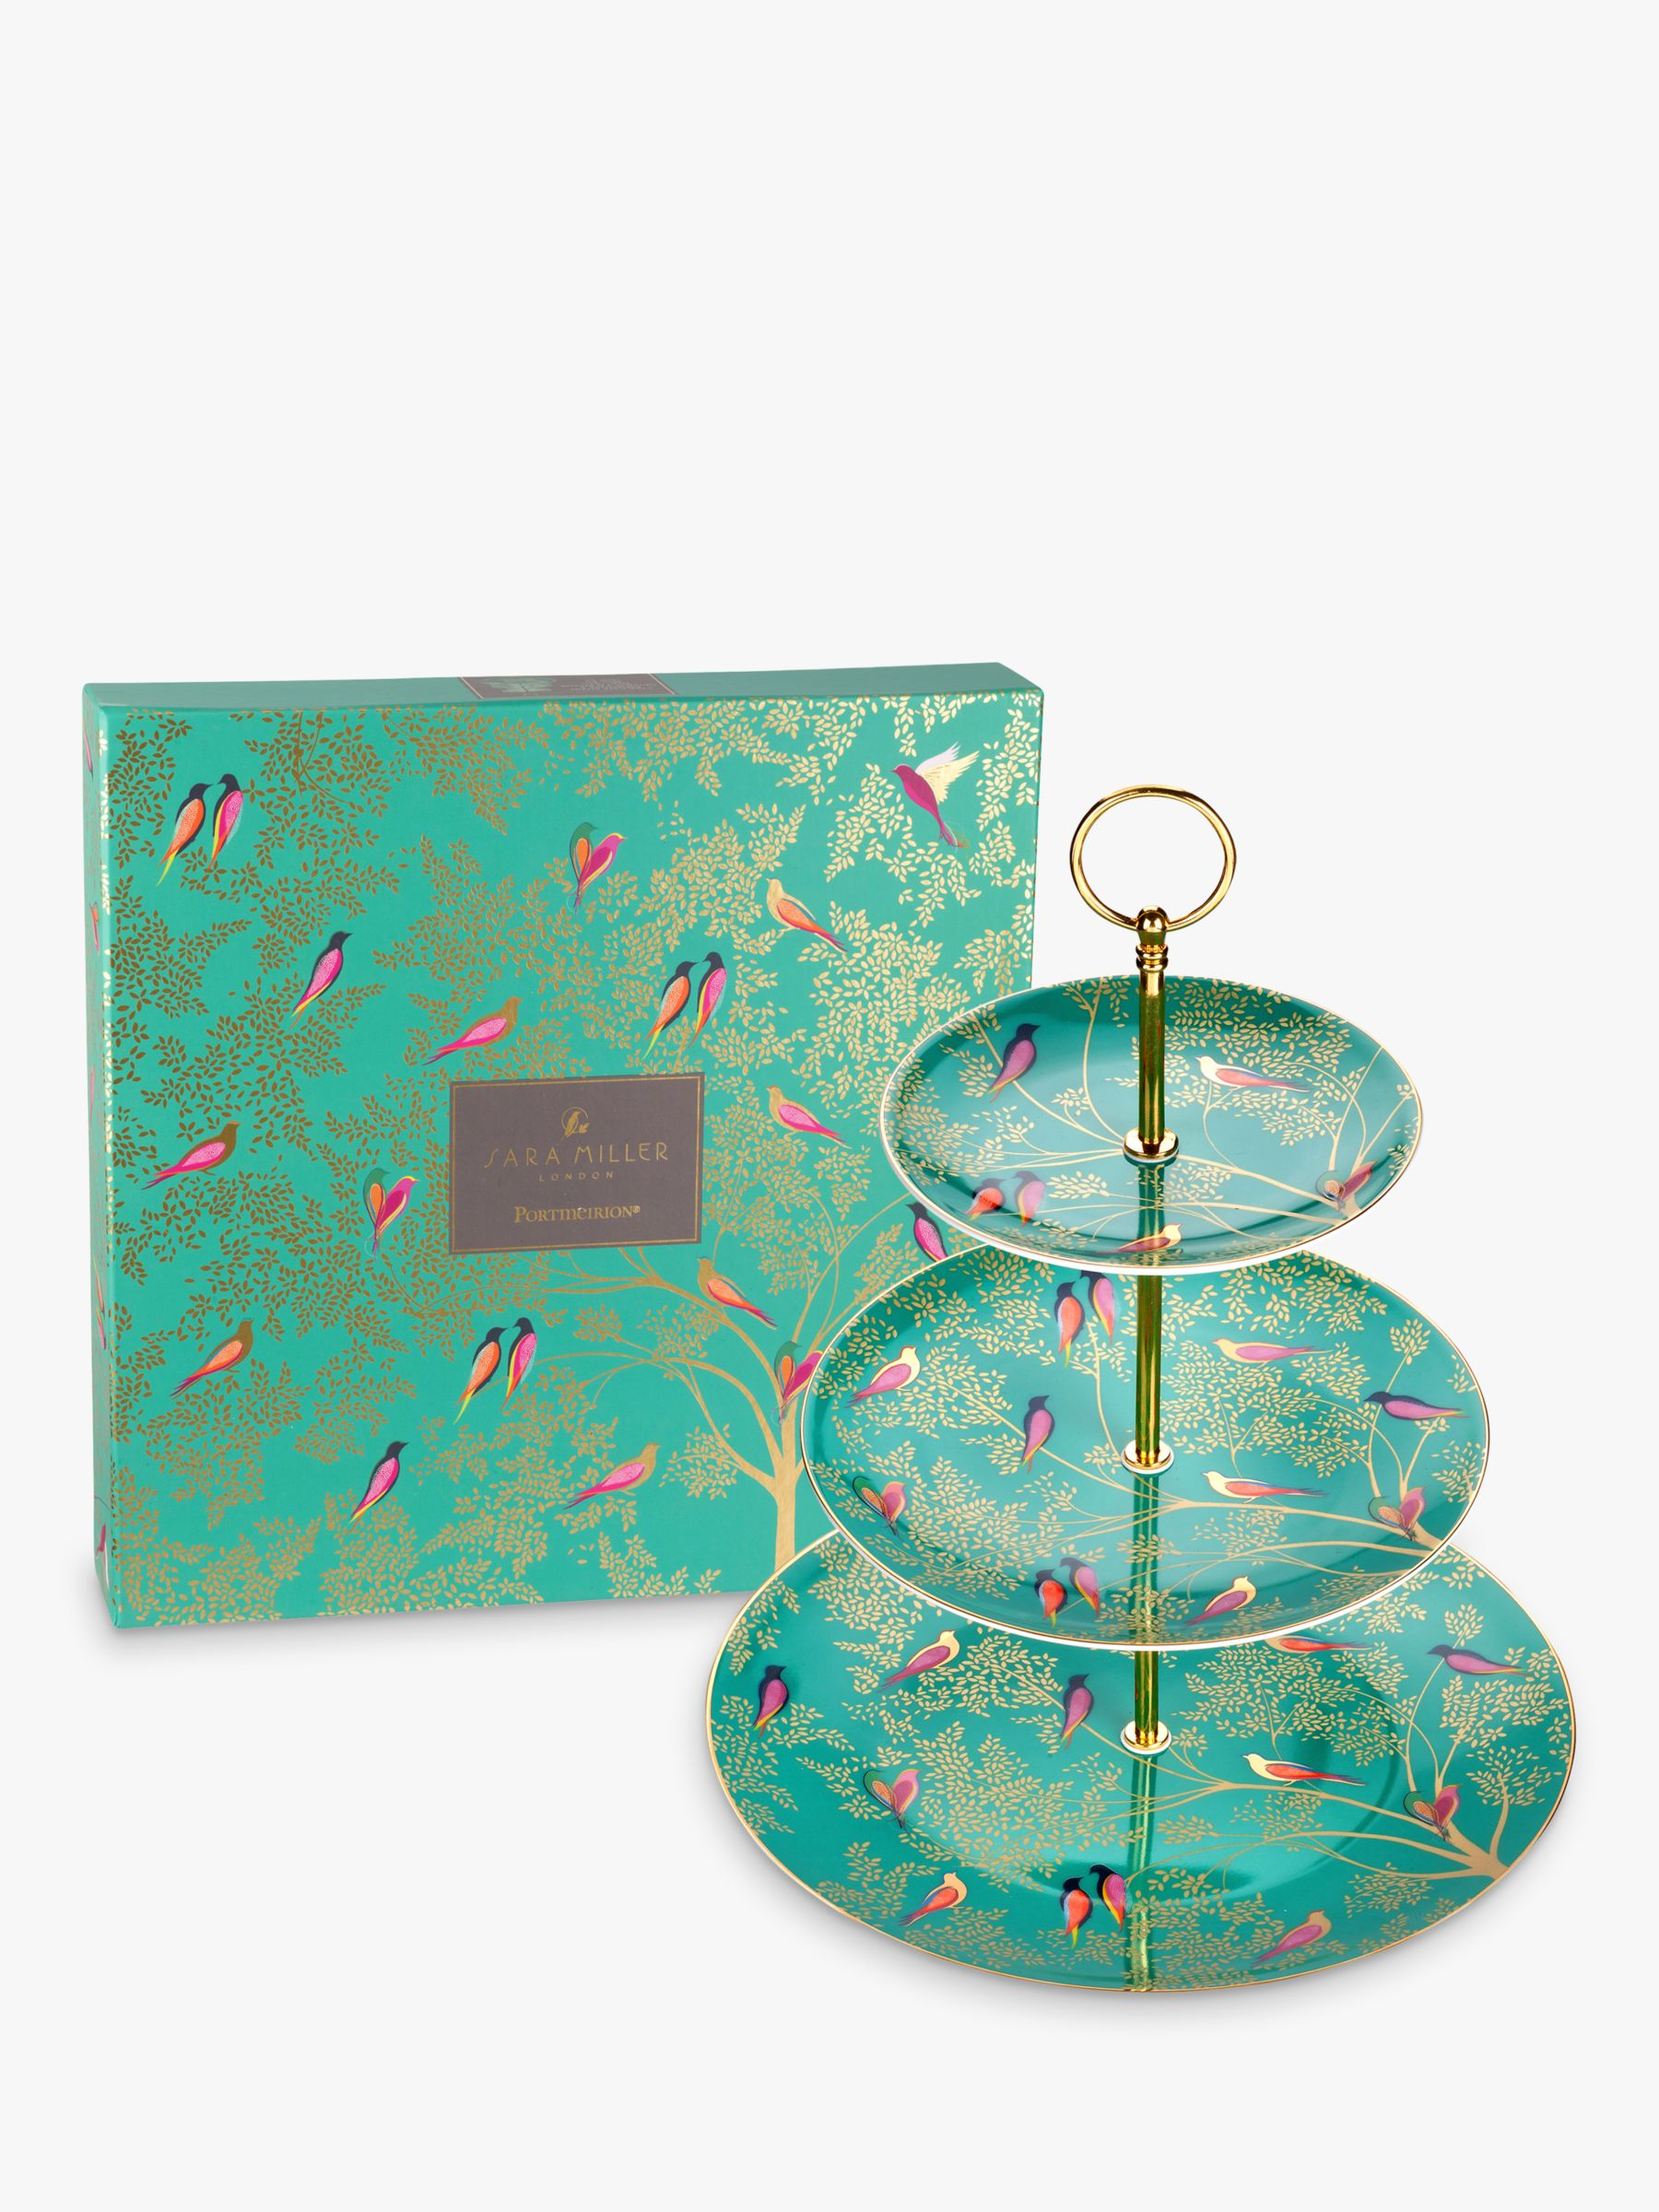 Sara Miller Chelsea Collection Cake Stand, Green